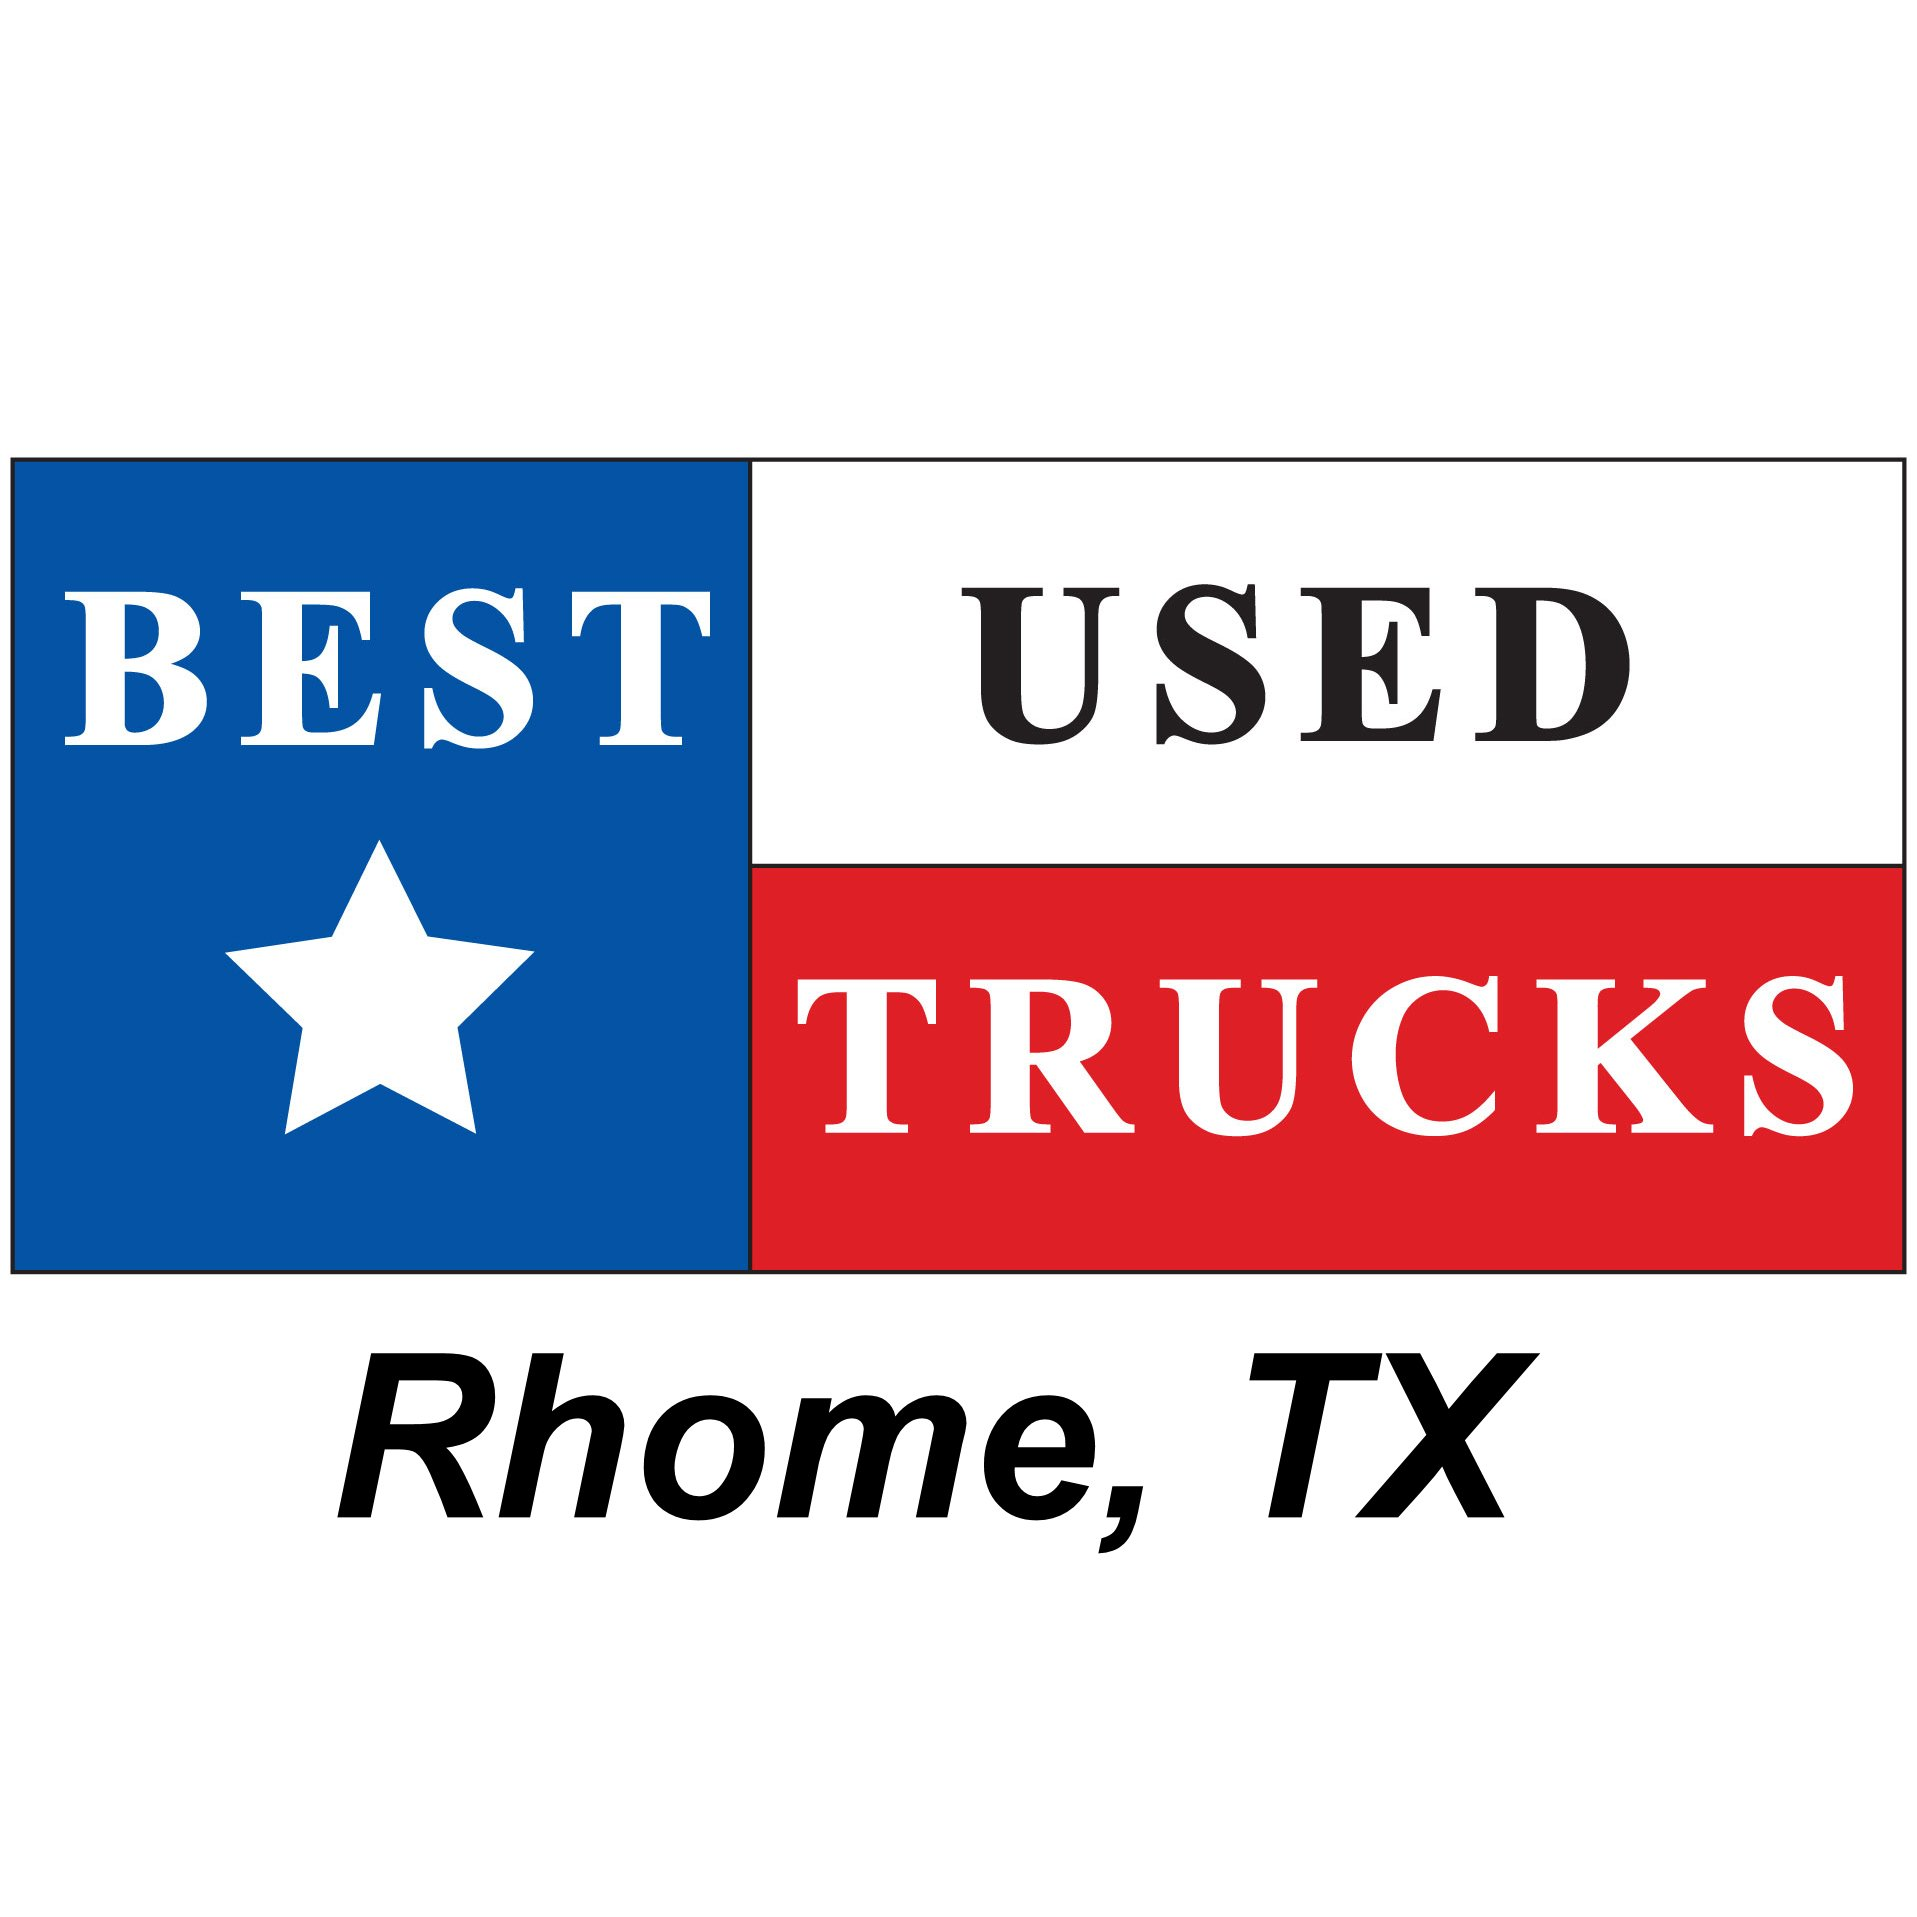 Best Used Trucks